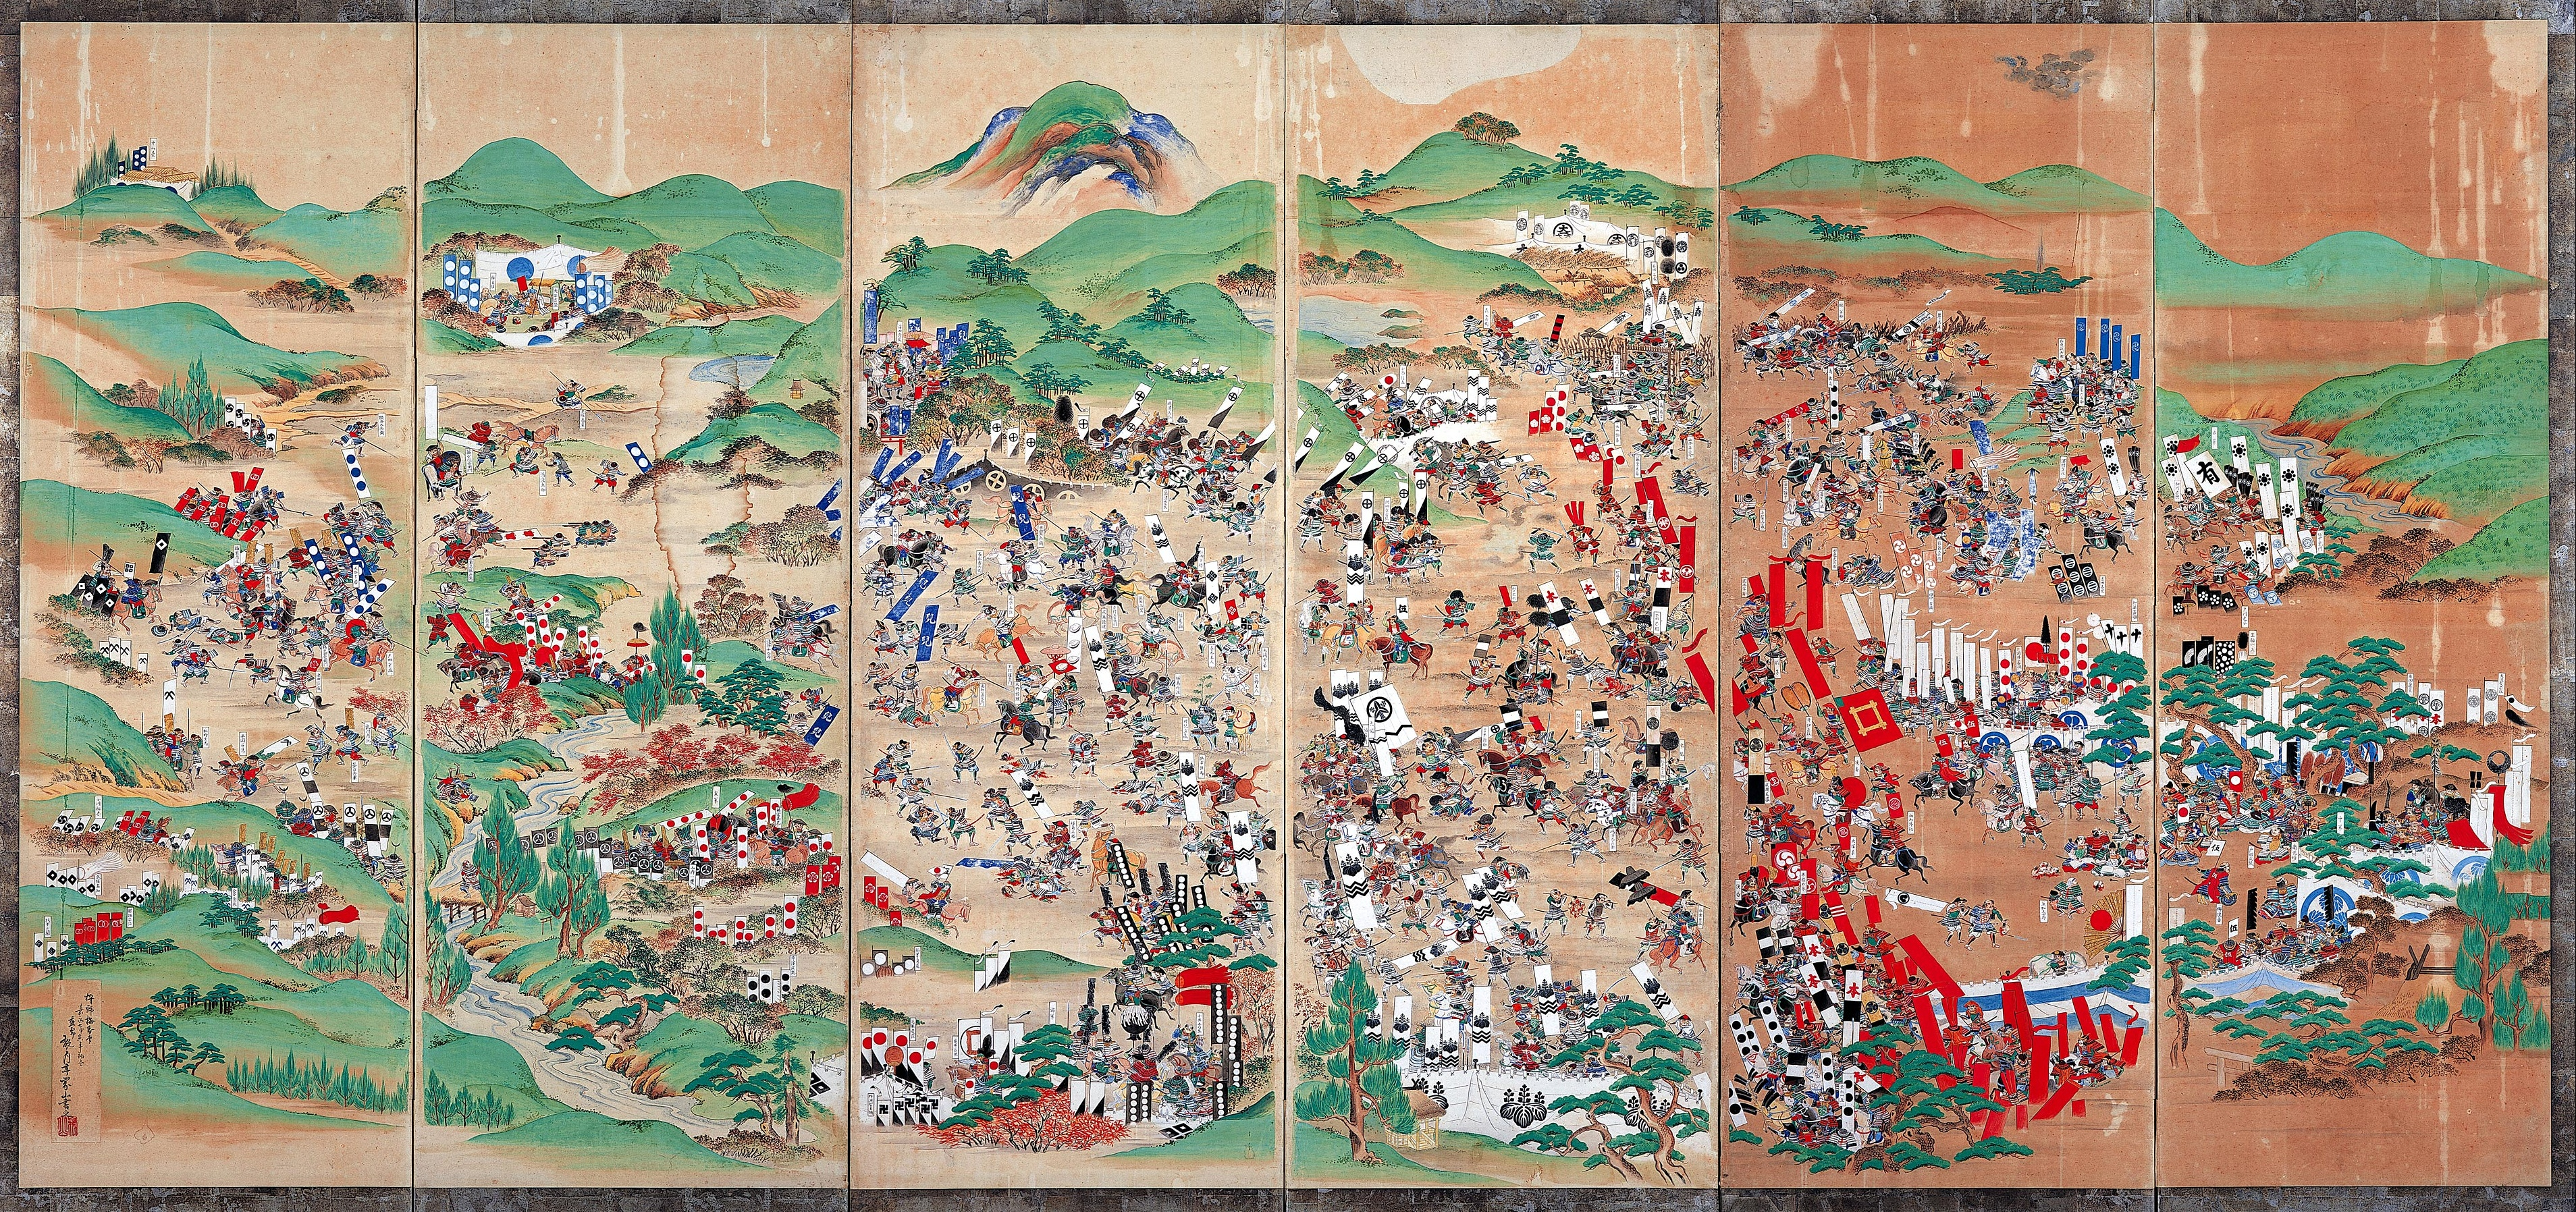 a history of the tokugawa shogunate a period in japanese history